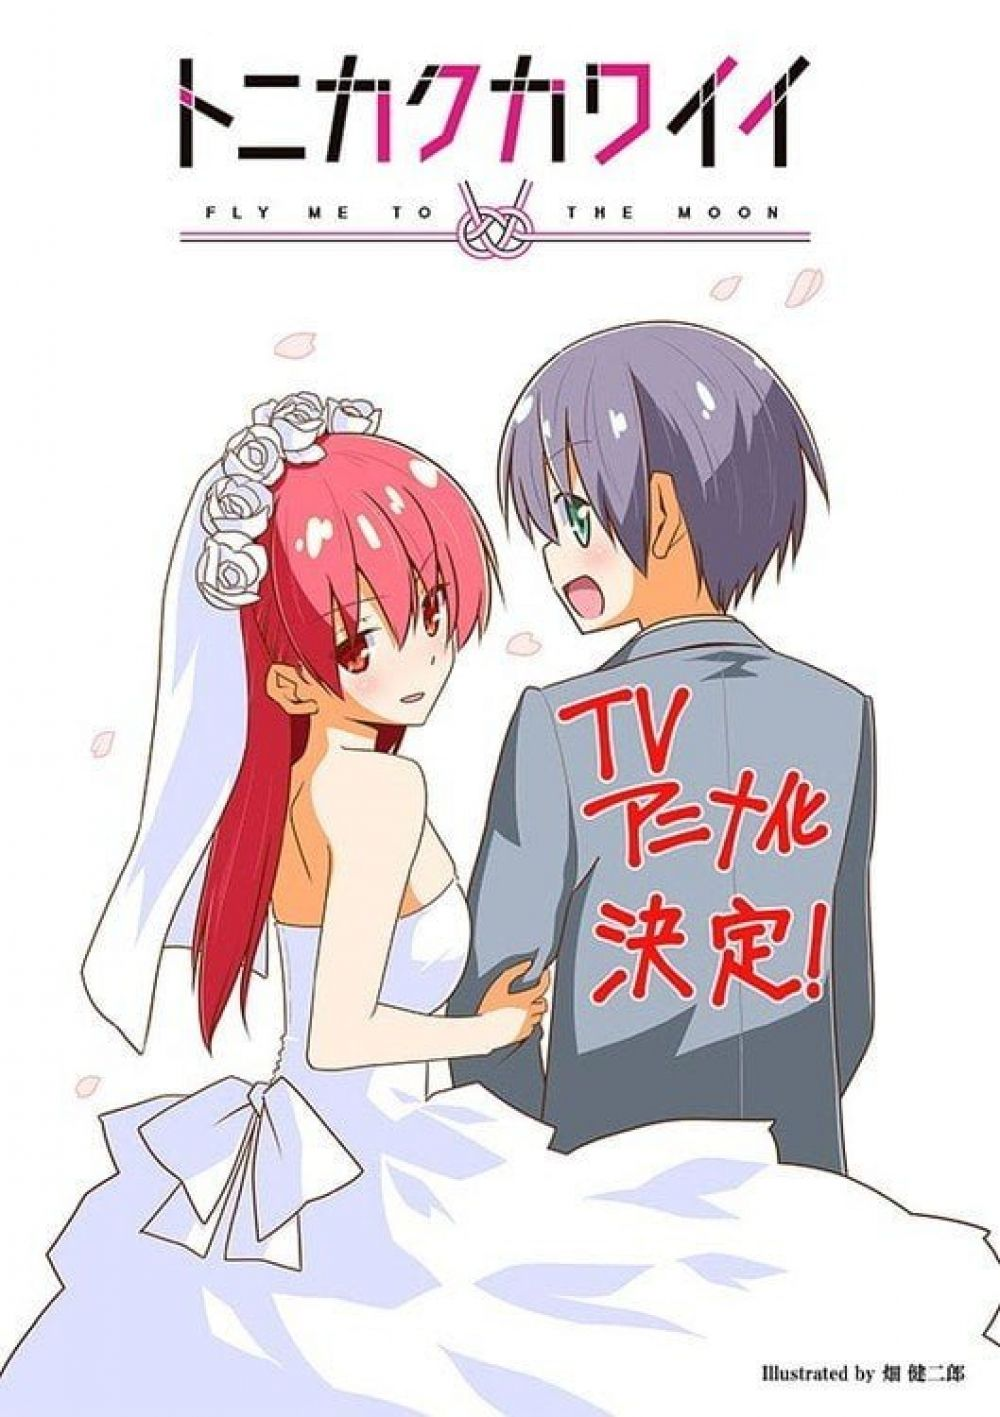 Hayate the Combat Butler Creator's Fly Me to the Moon